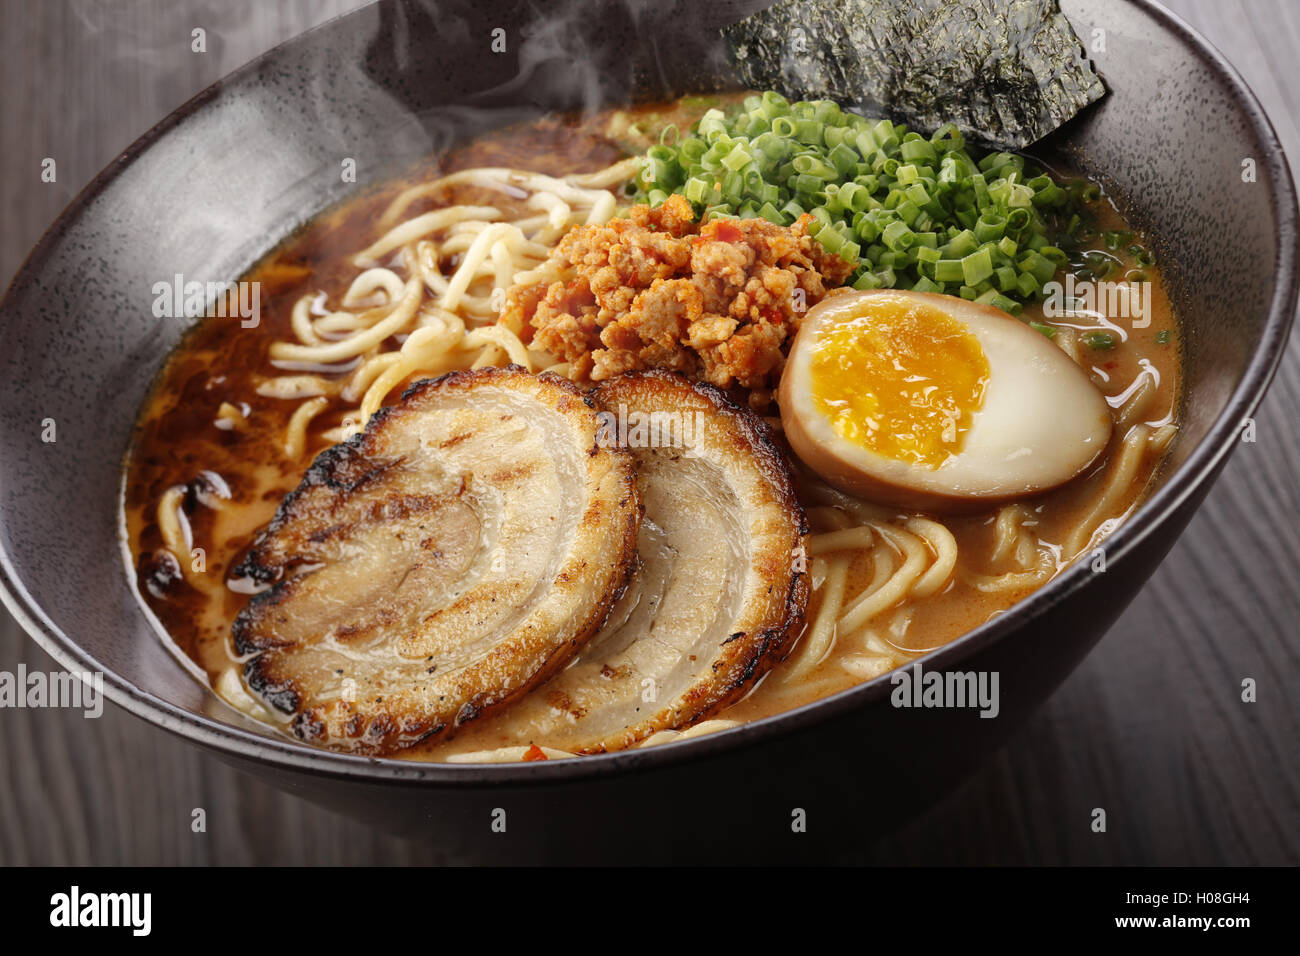 Classic Tantanmen, a rich miso-based broth infused with ground pork and egg - Stock Image